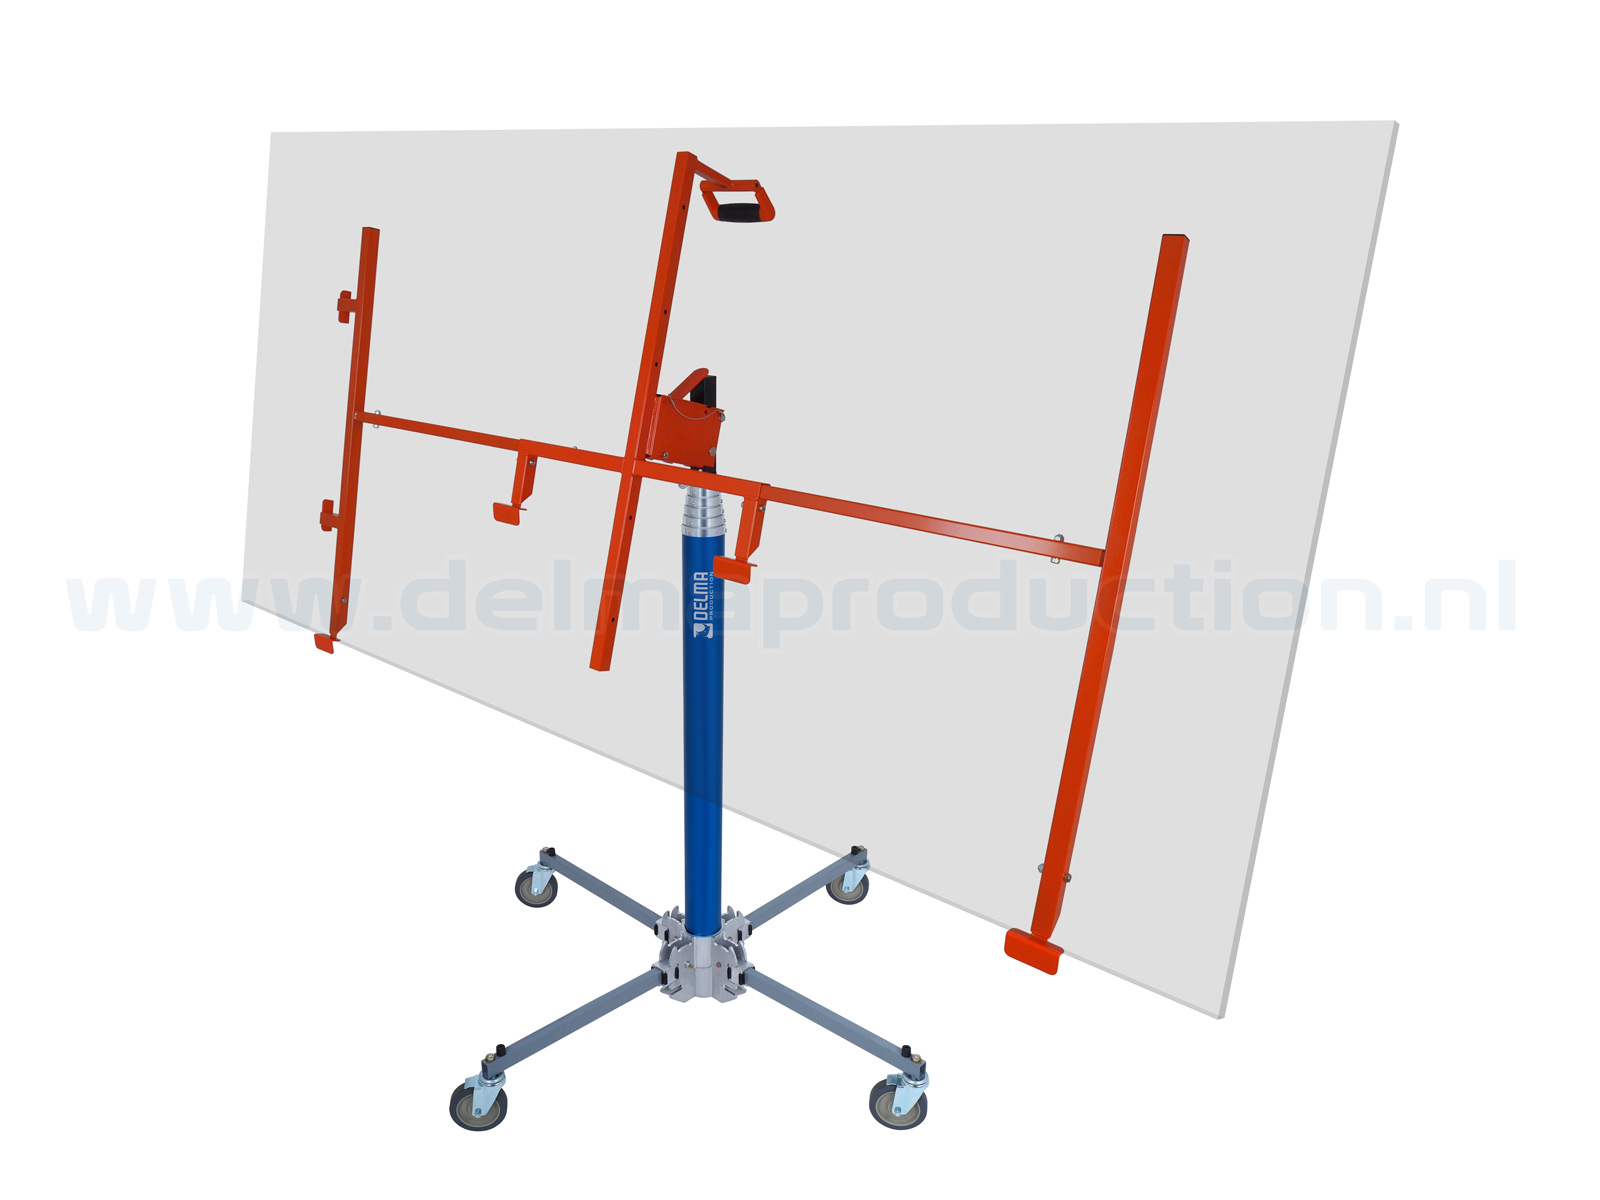 Drywall Panel Lift pneumatic 5.6 m 